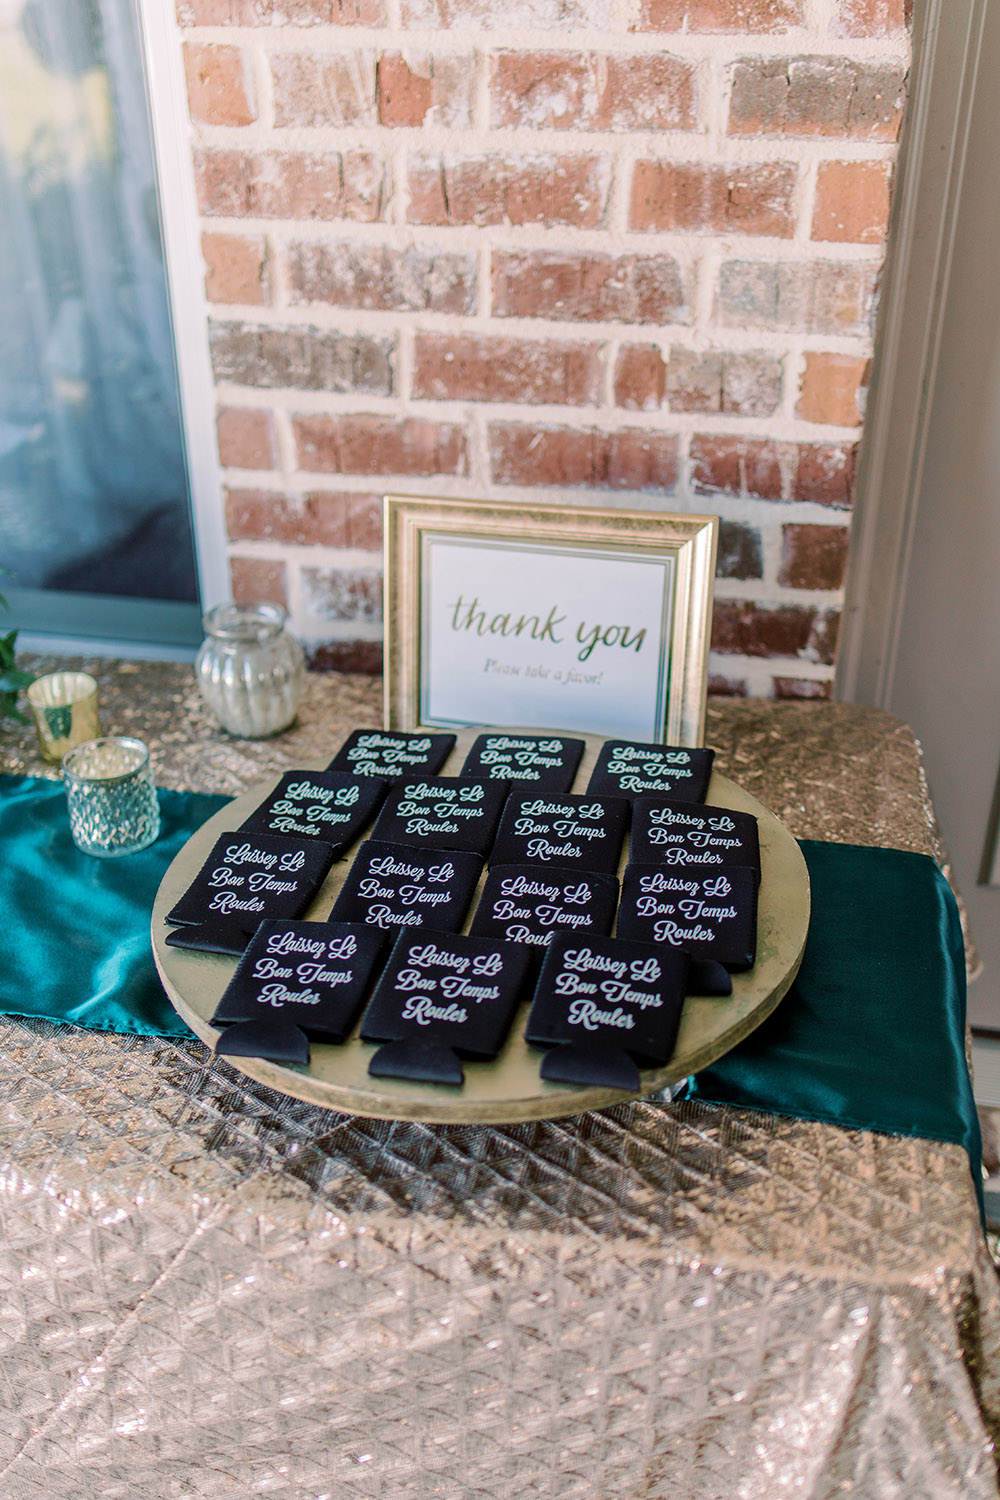 Display your favors, such as these personalized koozies that guests can use at the reception and then take home, at the entrance to the reception. Photo: Ashley Kristen Photography